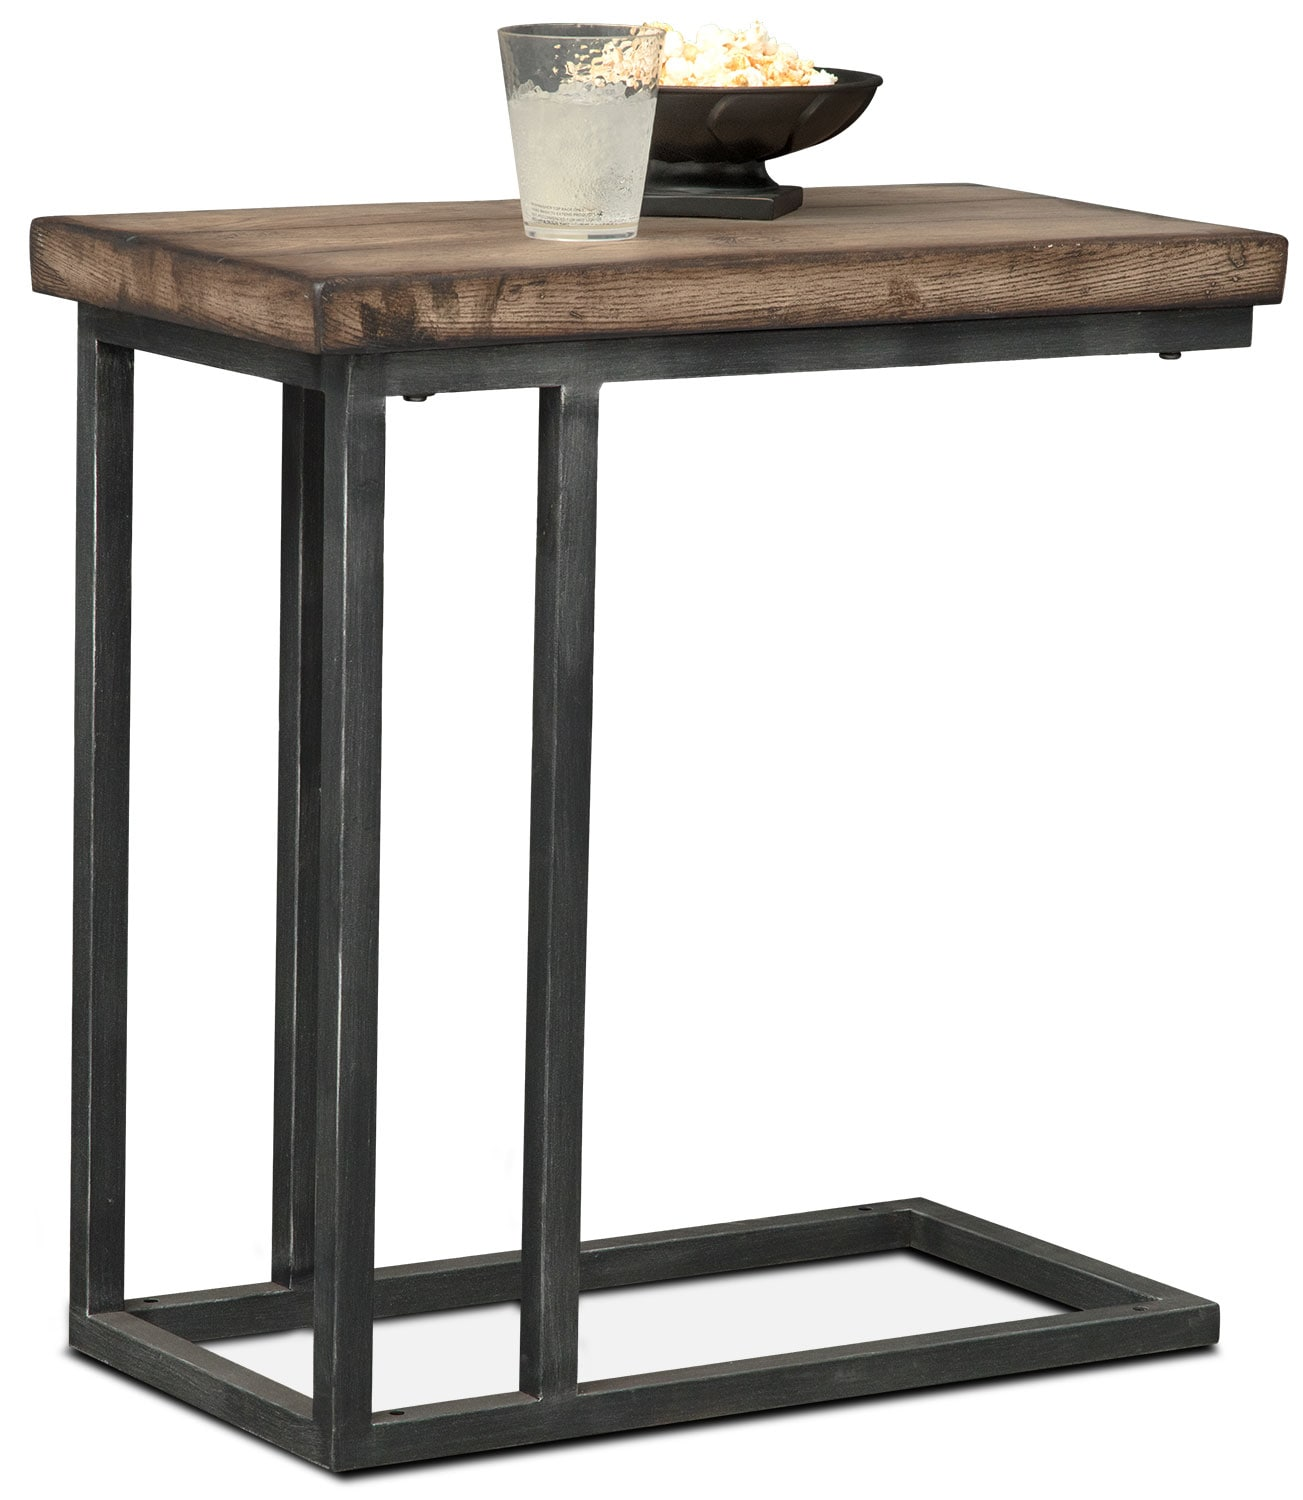 Driftwood End Table: American Signature Furniture